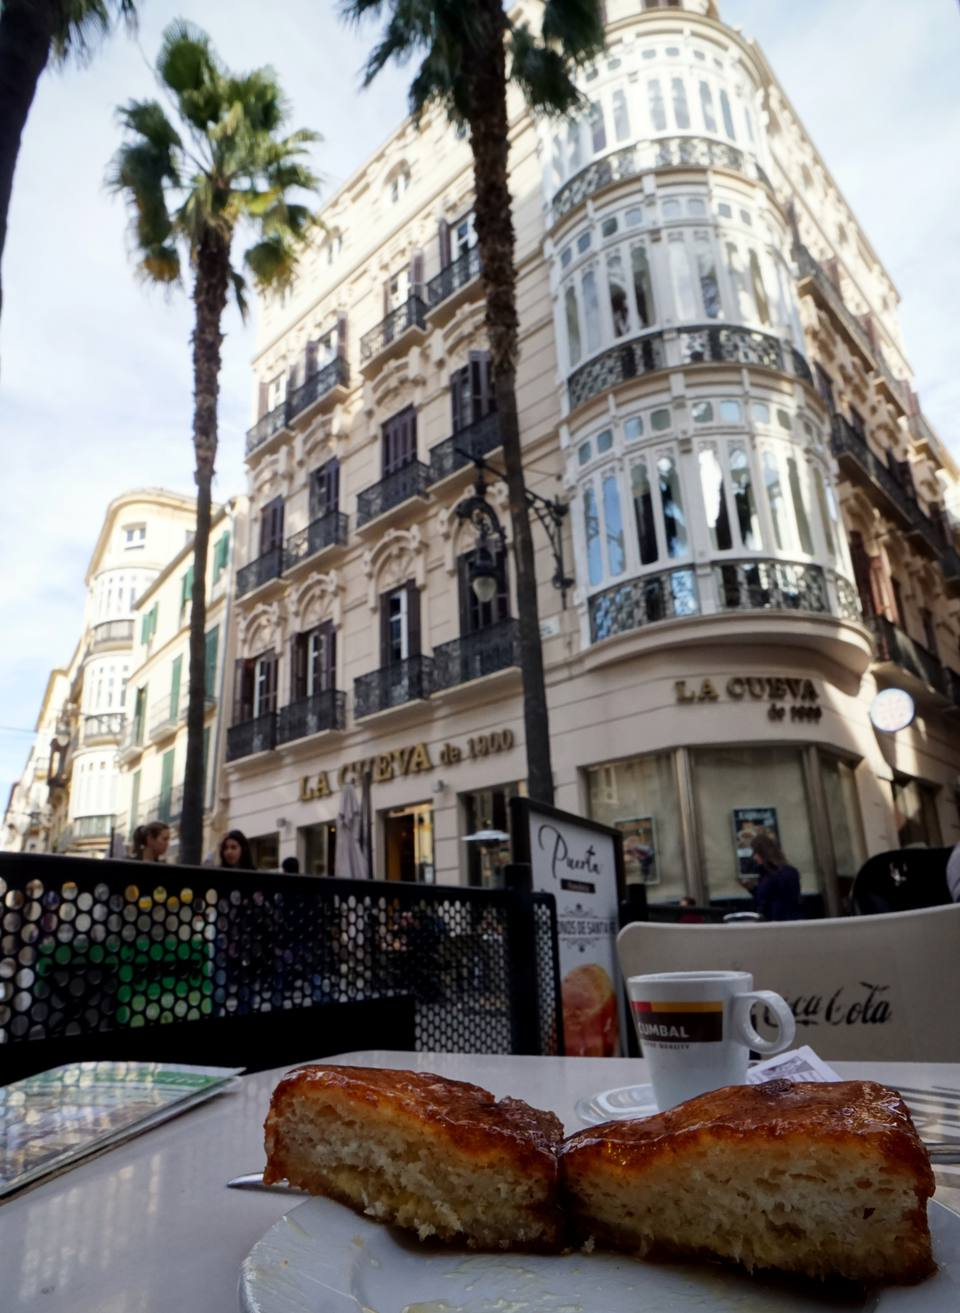 Coffee and cake in Malaga